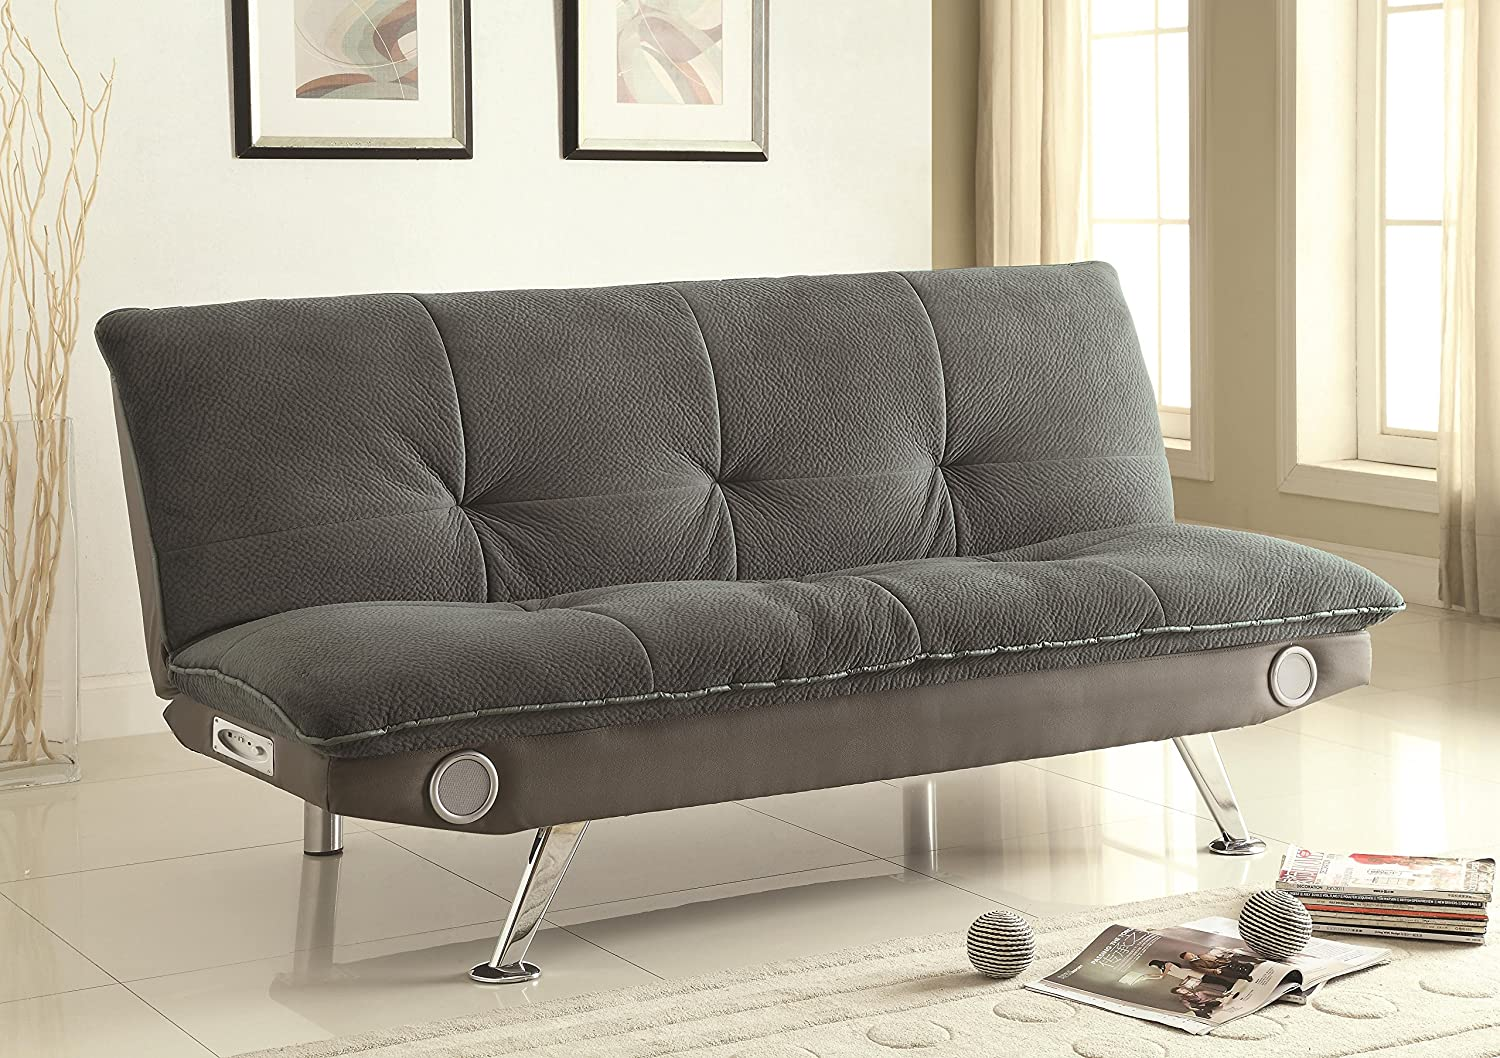 Amazon.com: Sofa Bed: Kitchen & Dining